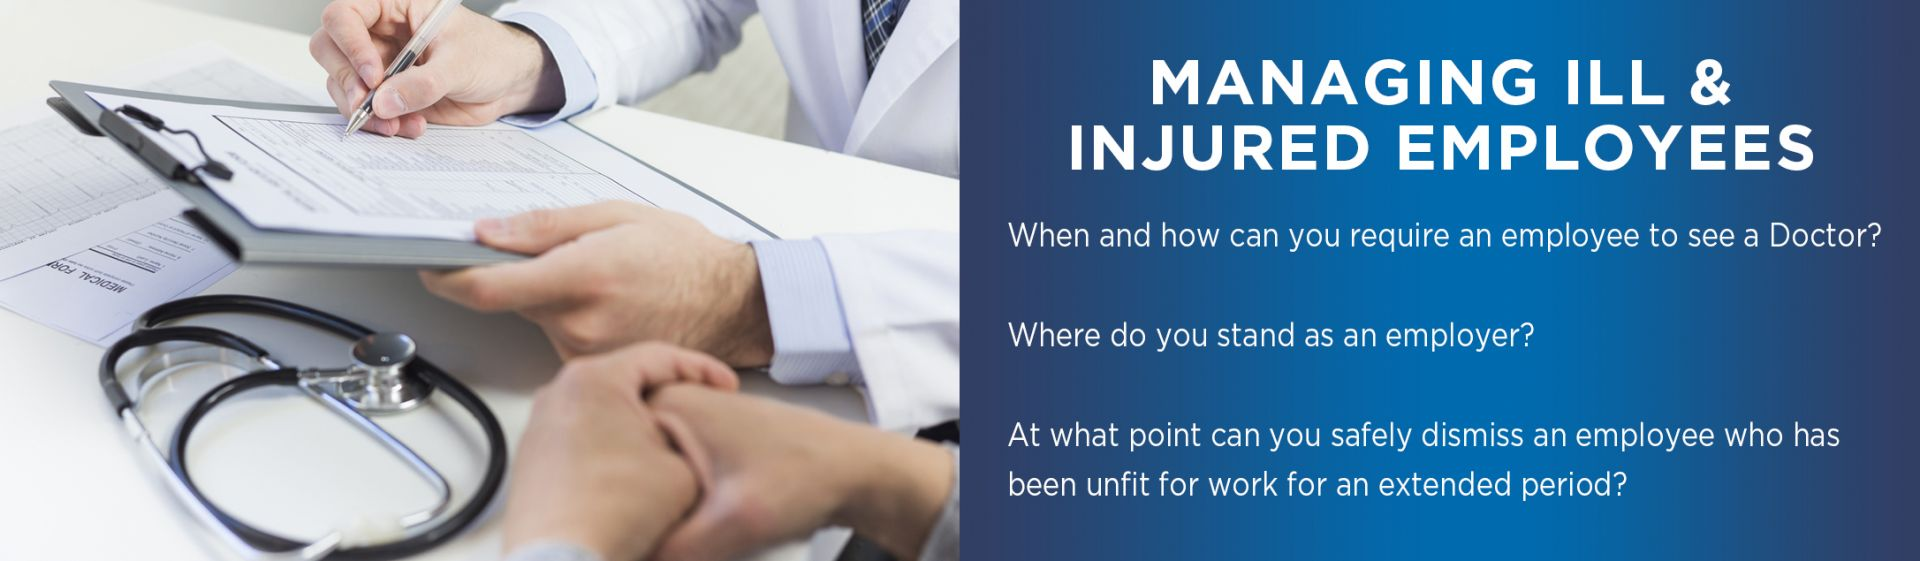 MANAGING ILL AND INJURED EMPLOYEES